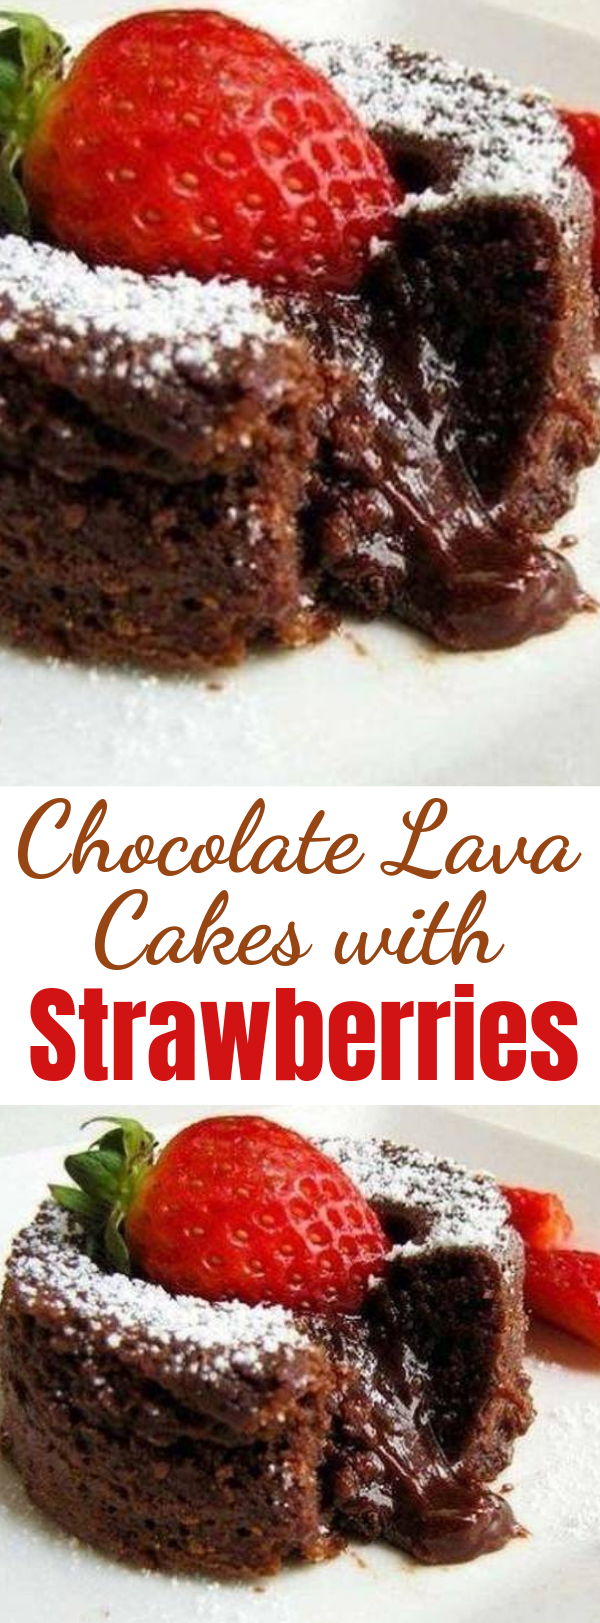 Chocolate Lava Cakes with Strawberries  - This version of Chocolate Lava Cake is especially rich and chocolaty!! #dessert #lavacakes #chocolatecake #easydessert